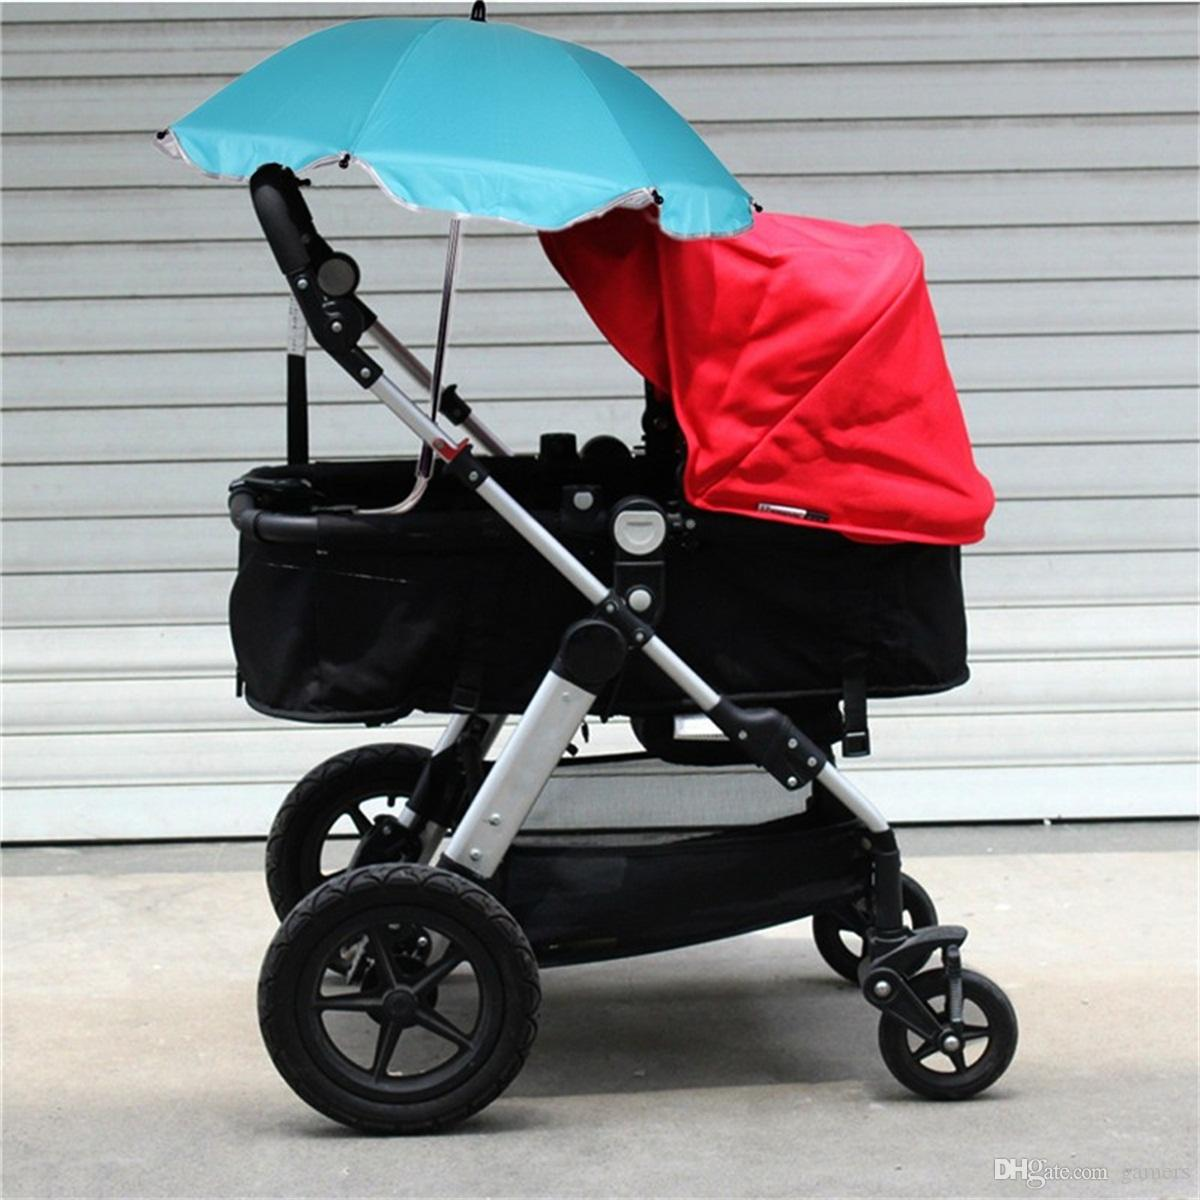 https://www.dhresource.com/0x0s/f2-albu-g5-M01-FC-77-rBVaJFkCtoiAfaw6AARQOcw1rfQ230.jpg/baby-stroller-accessories-umbrella-colorful.jpg